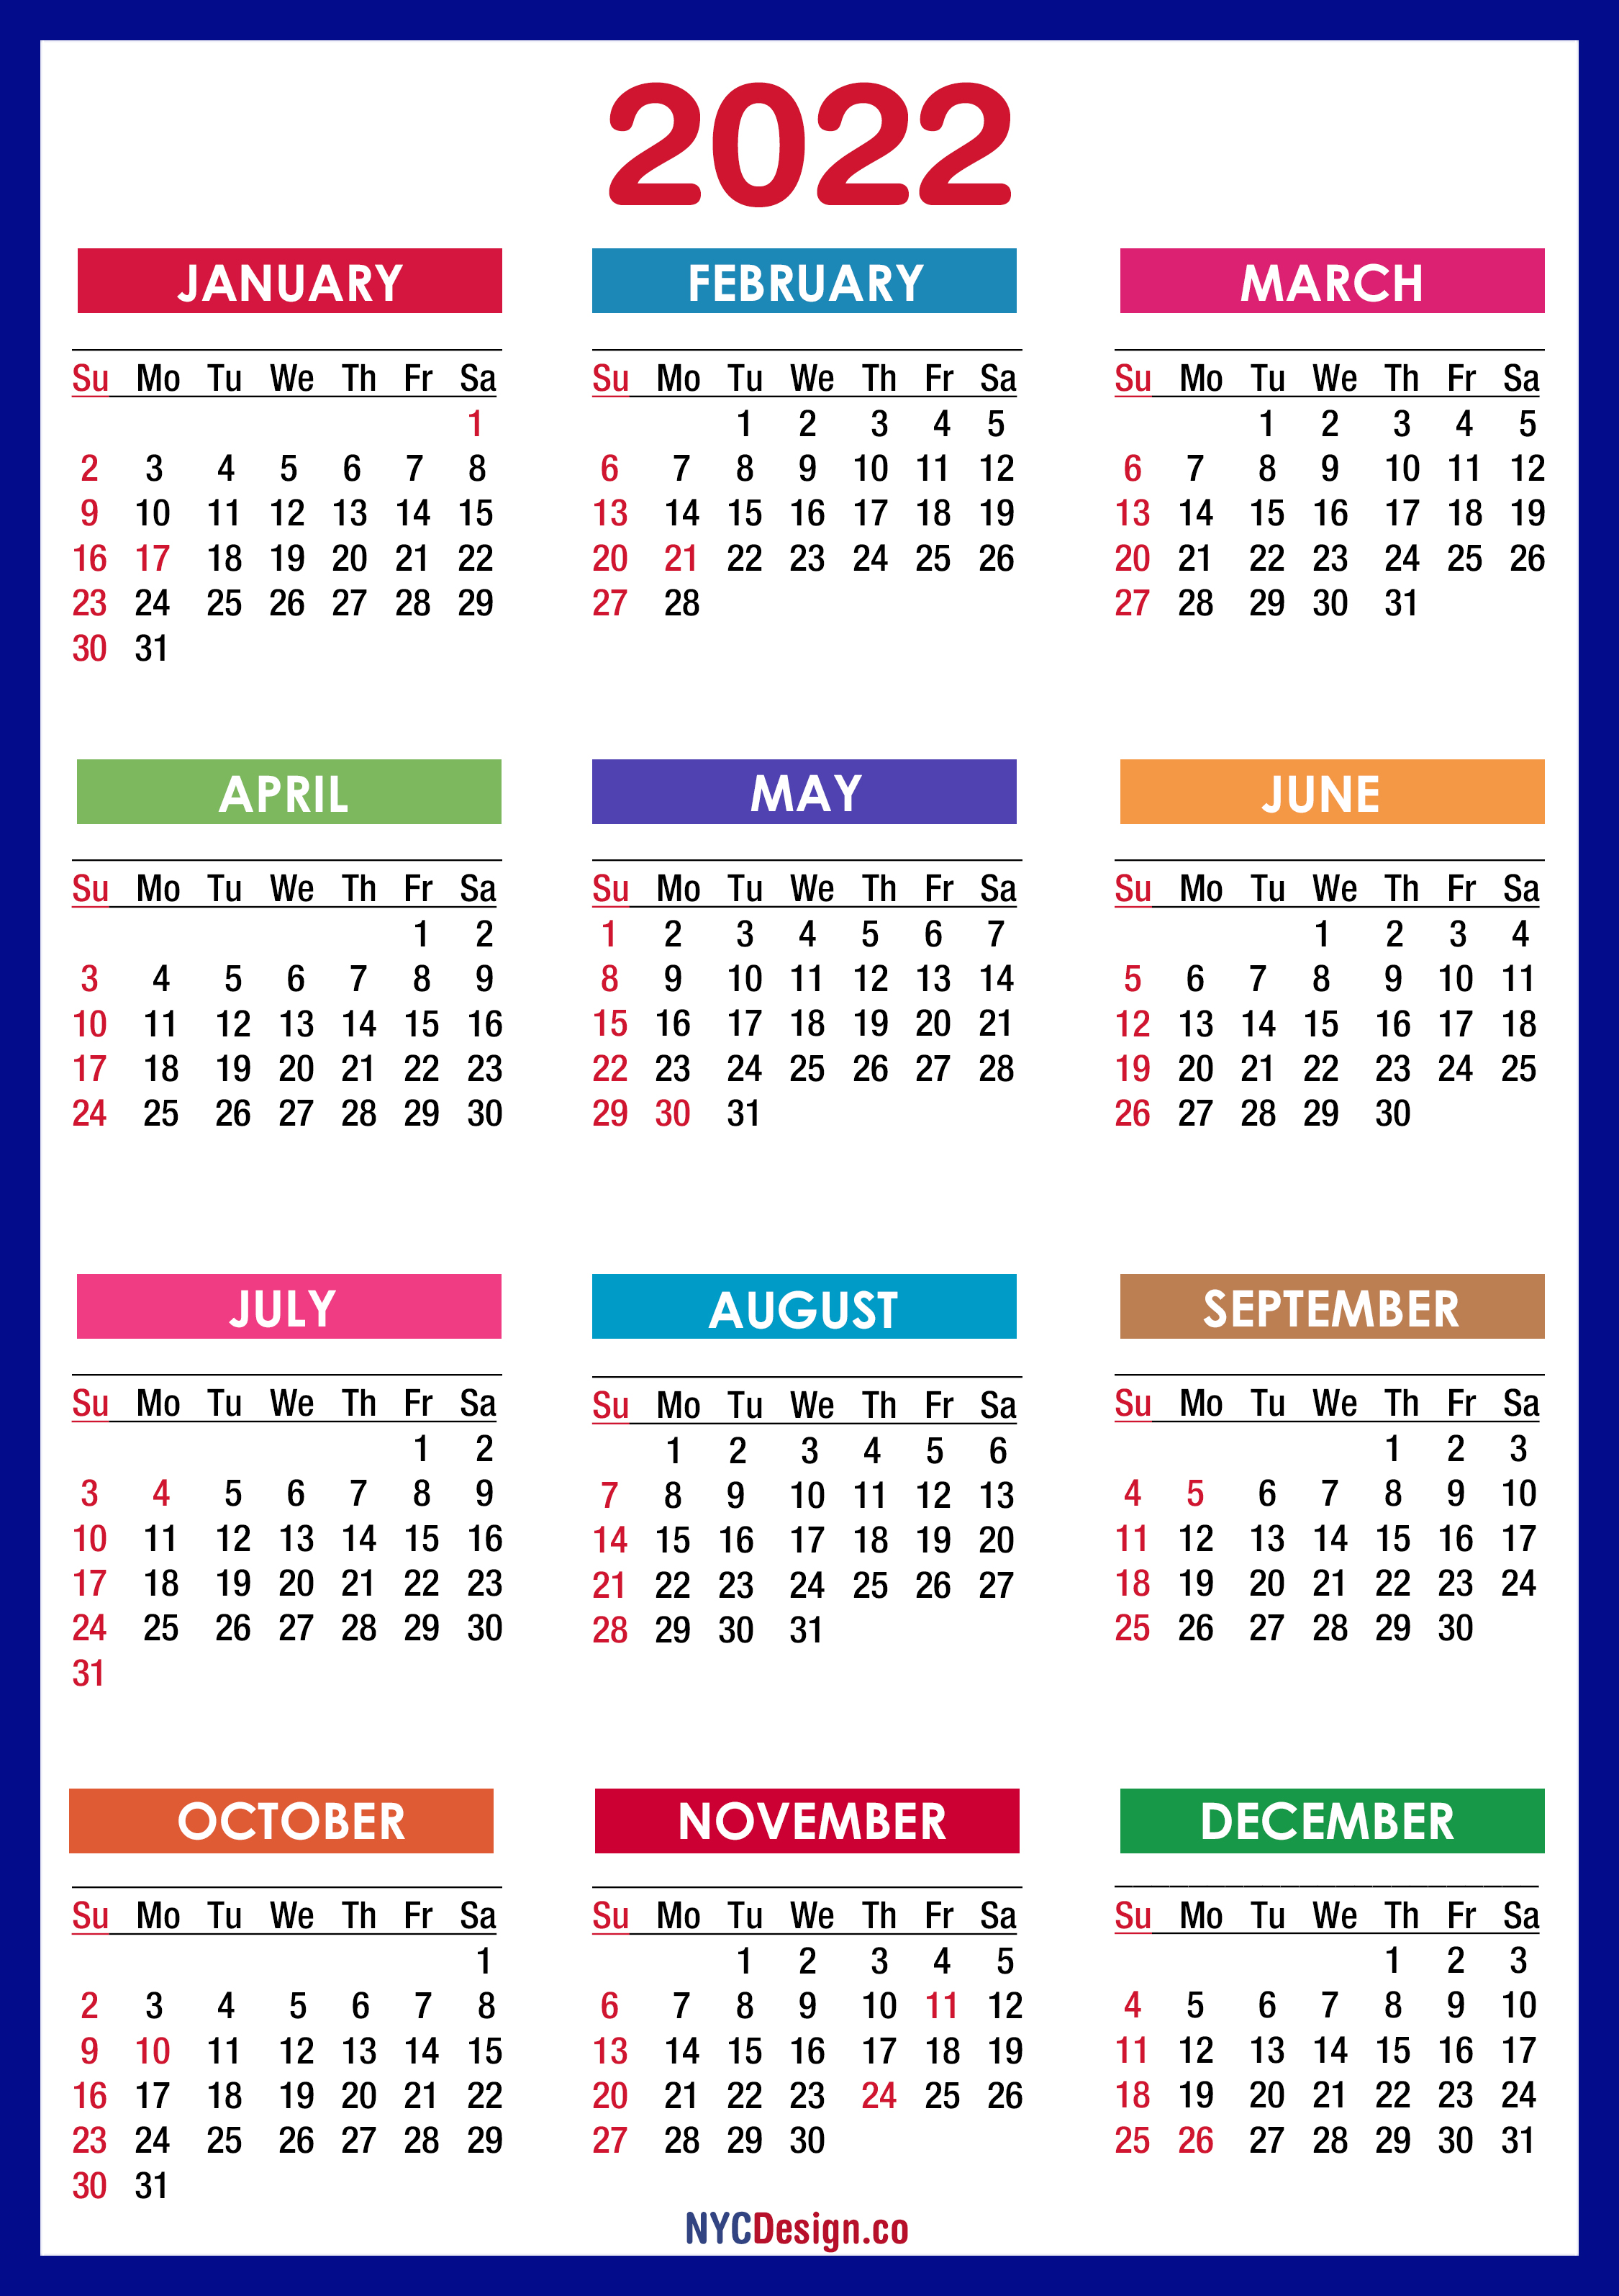 2022 One Page Calendar.2022 Calendar With Holidays Printable Free Pdf Colorful Blue Green Sunday Start Nycdesign Co Calendars Printable Free